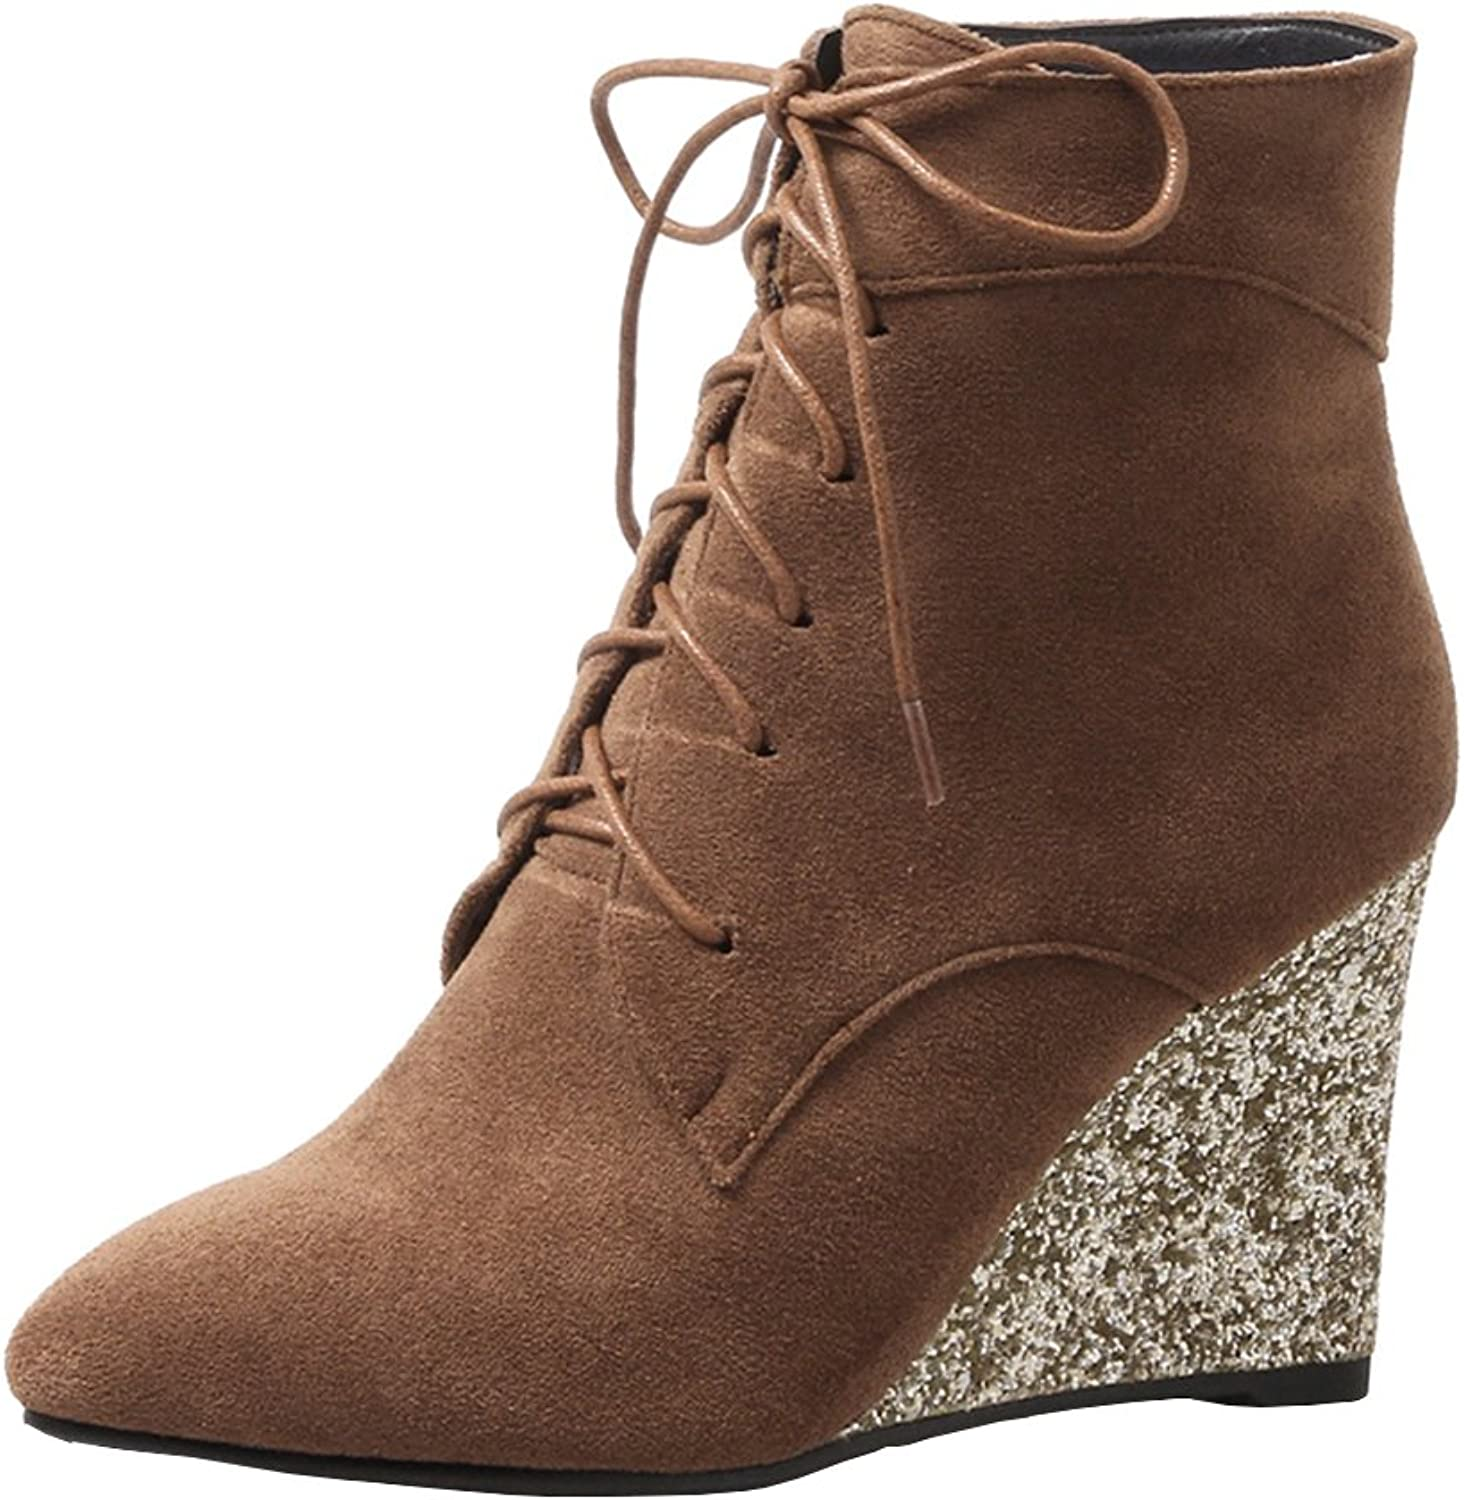 Agodor Womens Wedge Heel Lace up Ankle Boots High Heels Pointed Toe Autumn Winter shoes